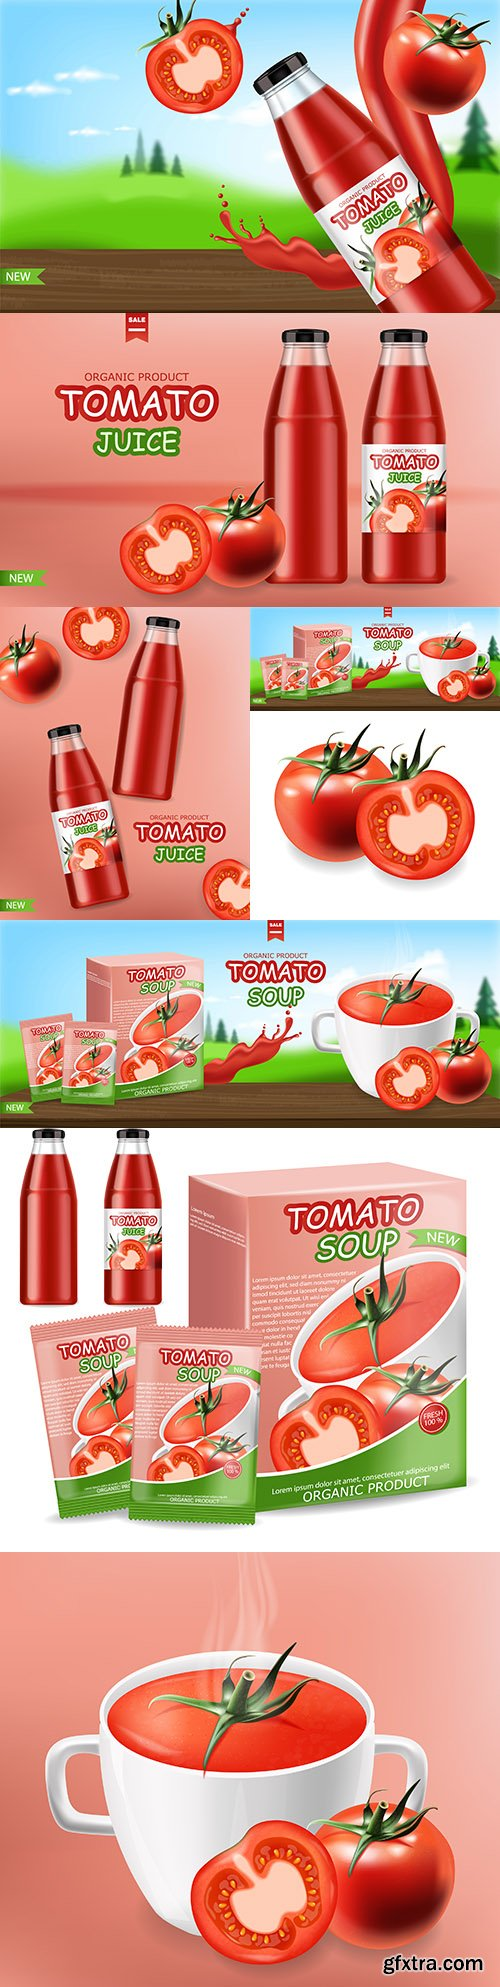 Tomato natural product and insulated packaging realistic banner